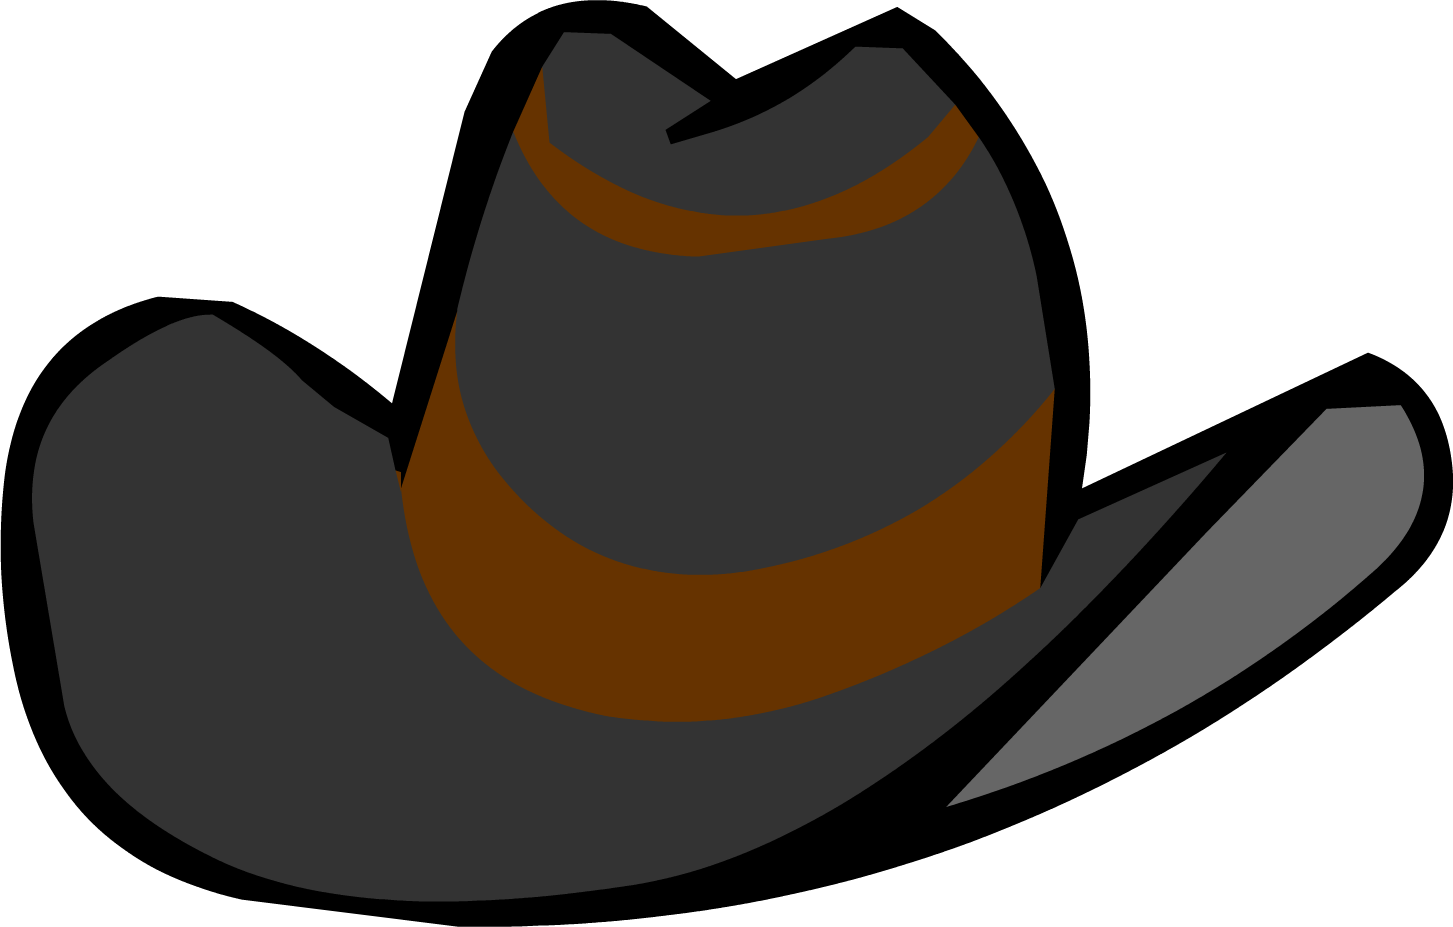 hight resolution of cowboy hat clipart 118549 within cowboy hat clipart cowboy hat png download 1453x927